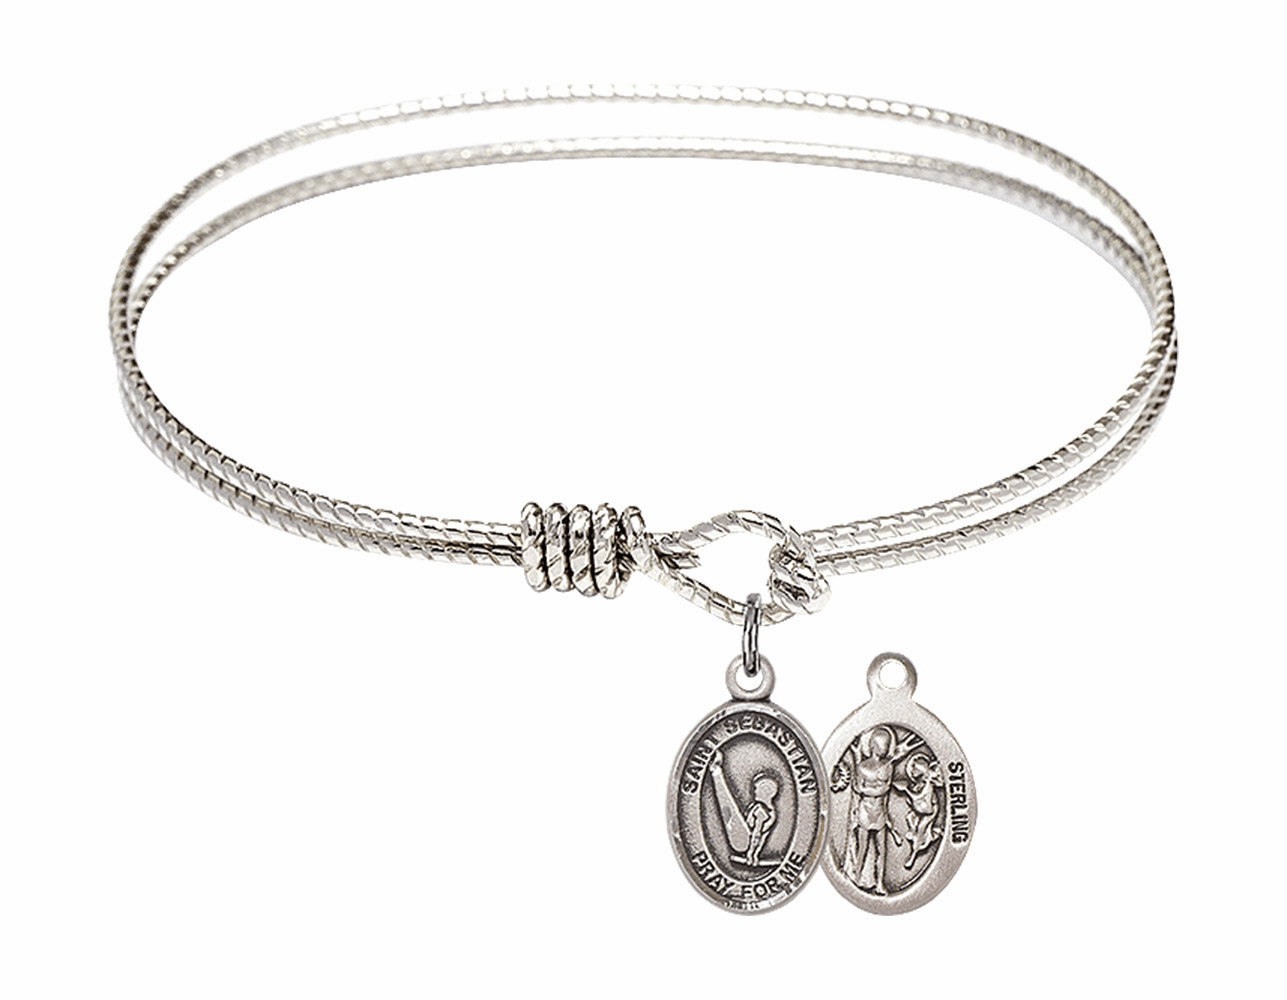 Twist Round Eye Hook St Sebastian Gymnastics Bangle Charm Bracelet by Bliss